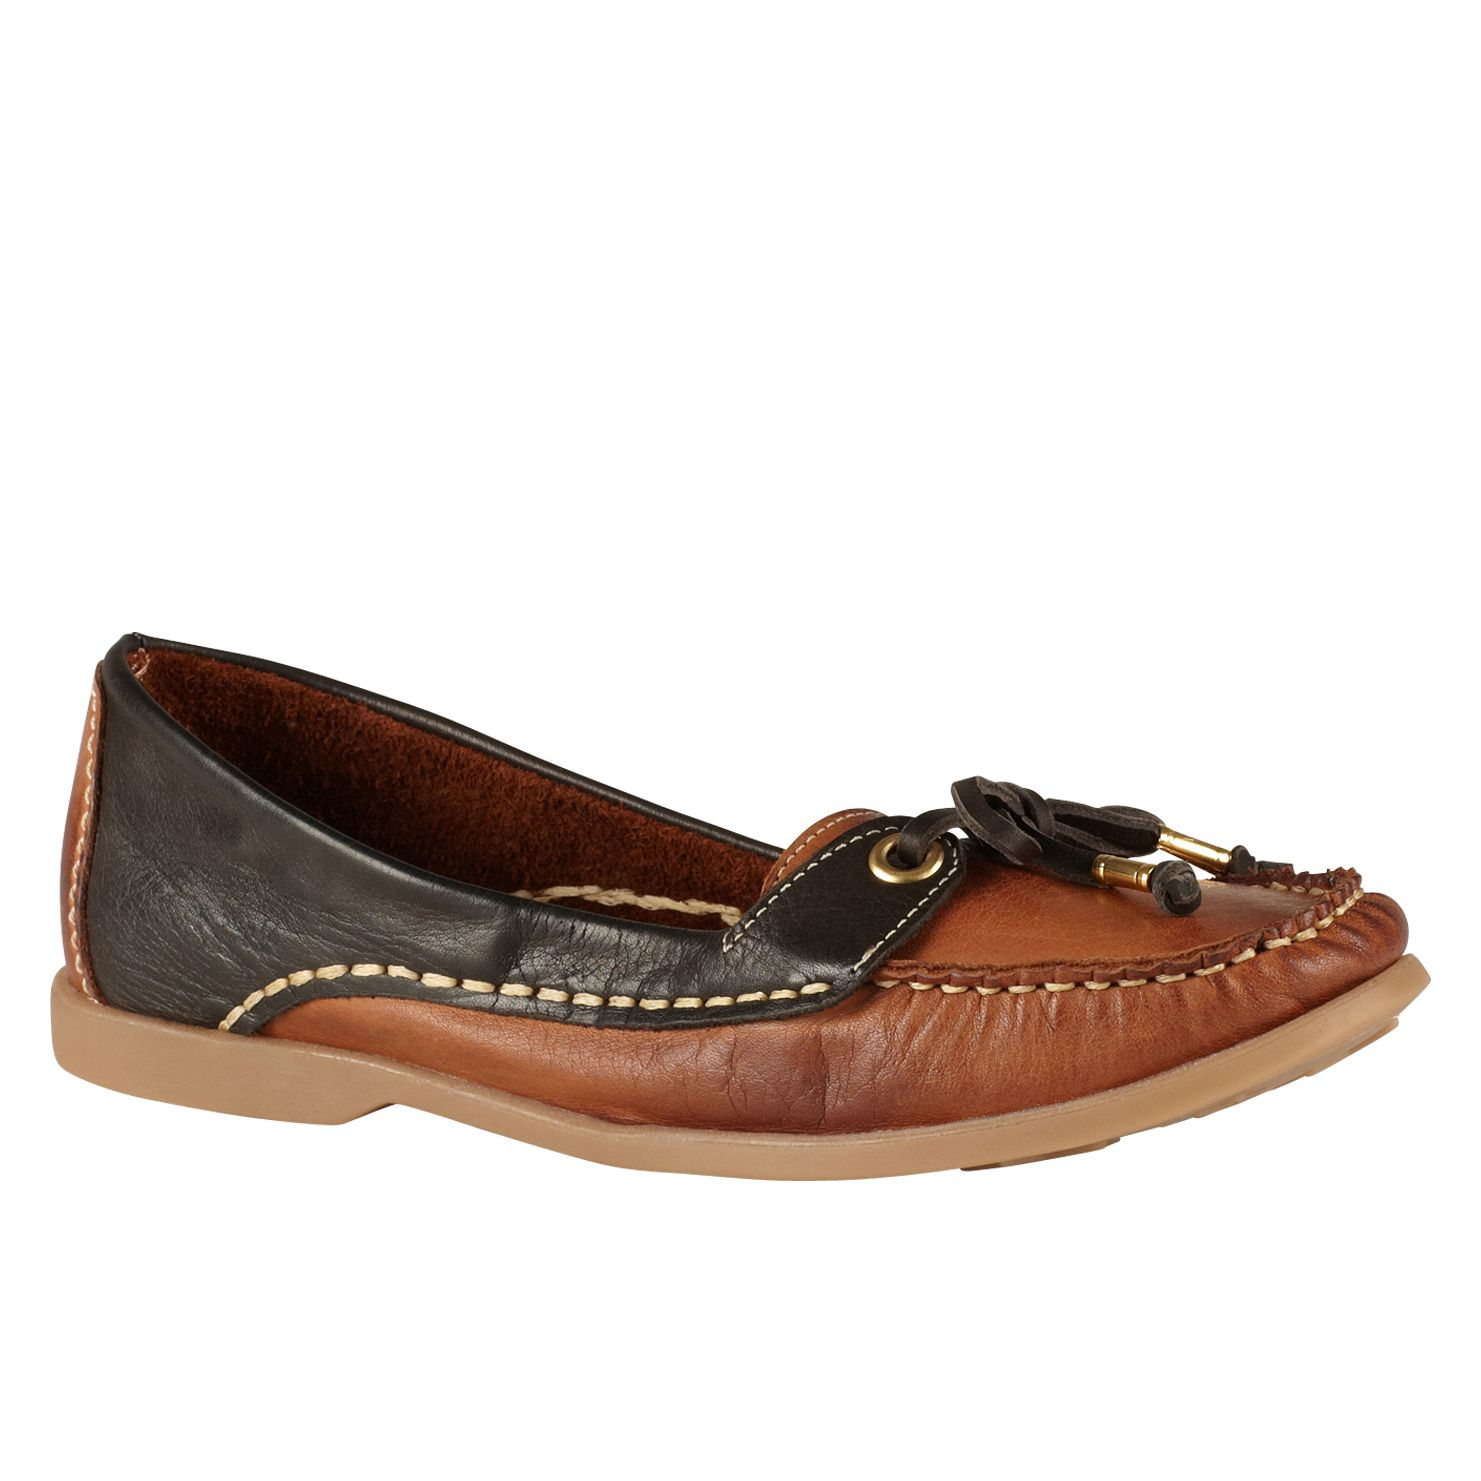 ALDO Loafers Philippines Philippines Did you know Zoacien Tassel Loafers In Brown, Men's Municipio Penny Loafer, Black Leather, 12 D US and Giangrande Slip Ons are the most popular ALDO Loafers? If you are not sure whether to purchase ALDO Loafers, you might want to check out these products from TOD'S, Santoni and Gucci. iPrice Philippines.